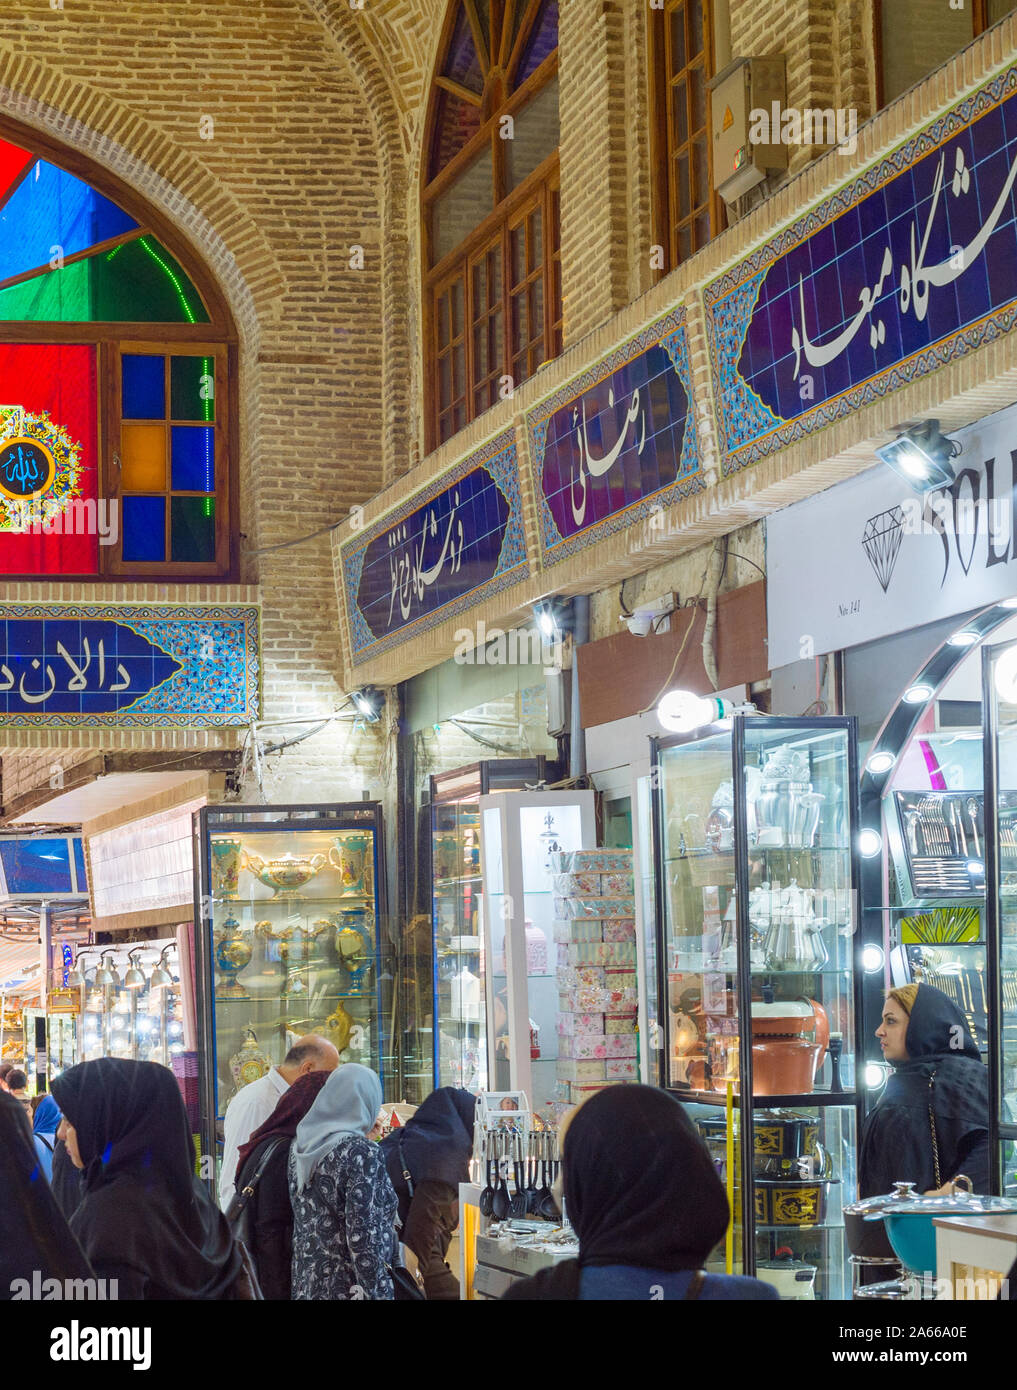 TEHRAN, IRAN - MAY 22, 2017: Crowd of people in row of Grand Bazaar with stalls of dishes Stock Photo